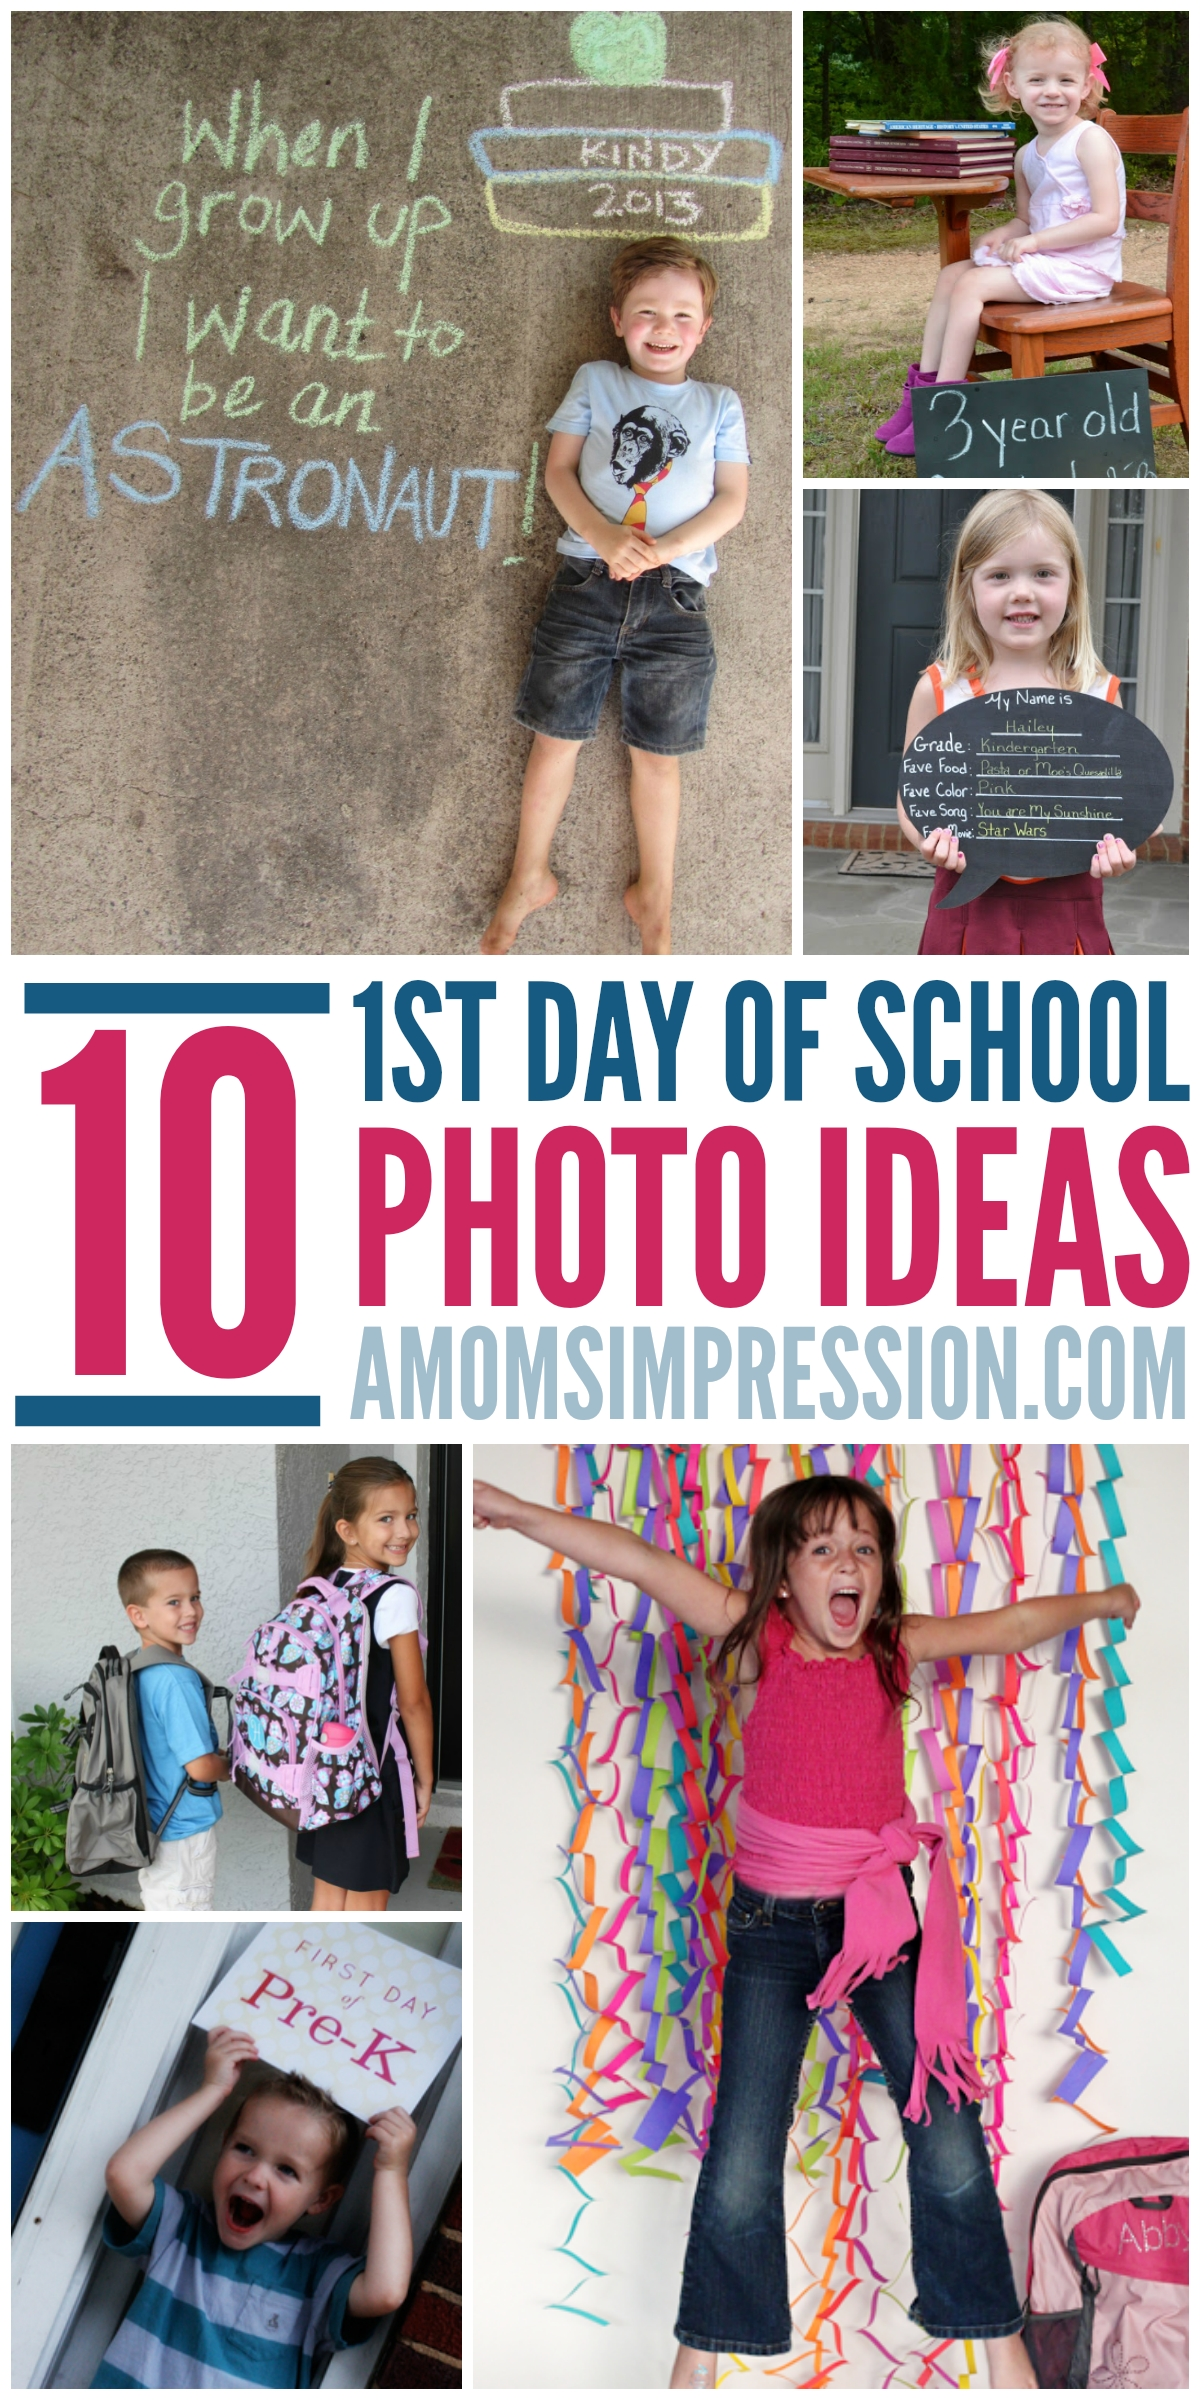 10 fun photo ideas for the 1st day of school. parents love to